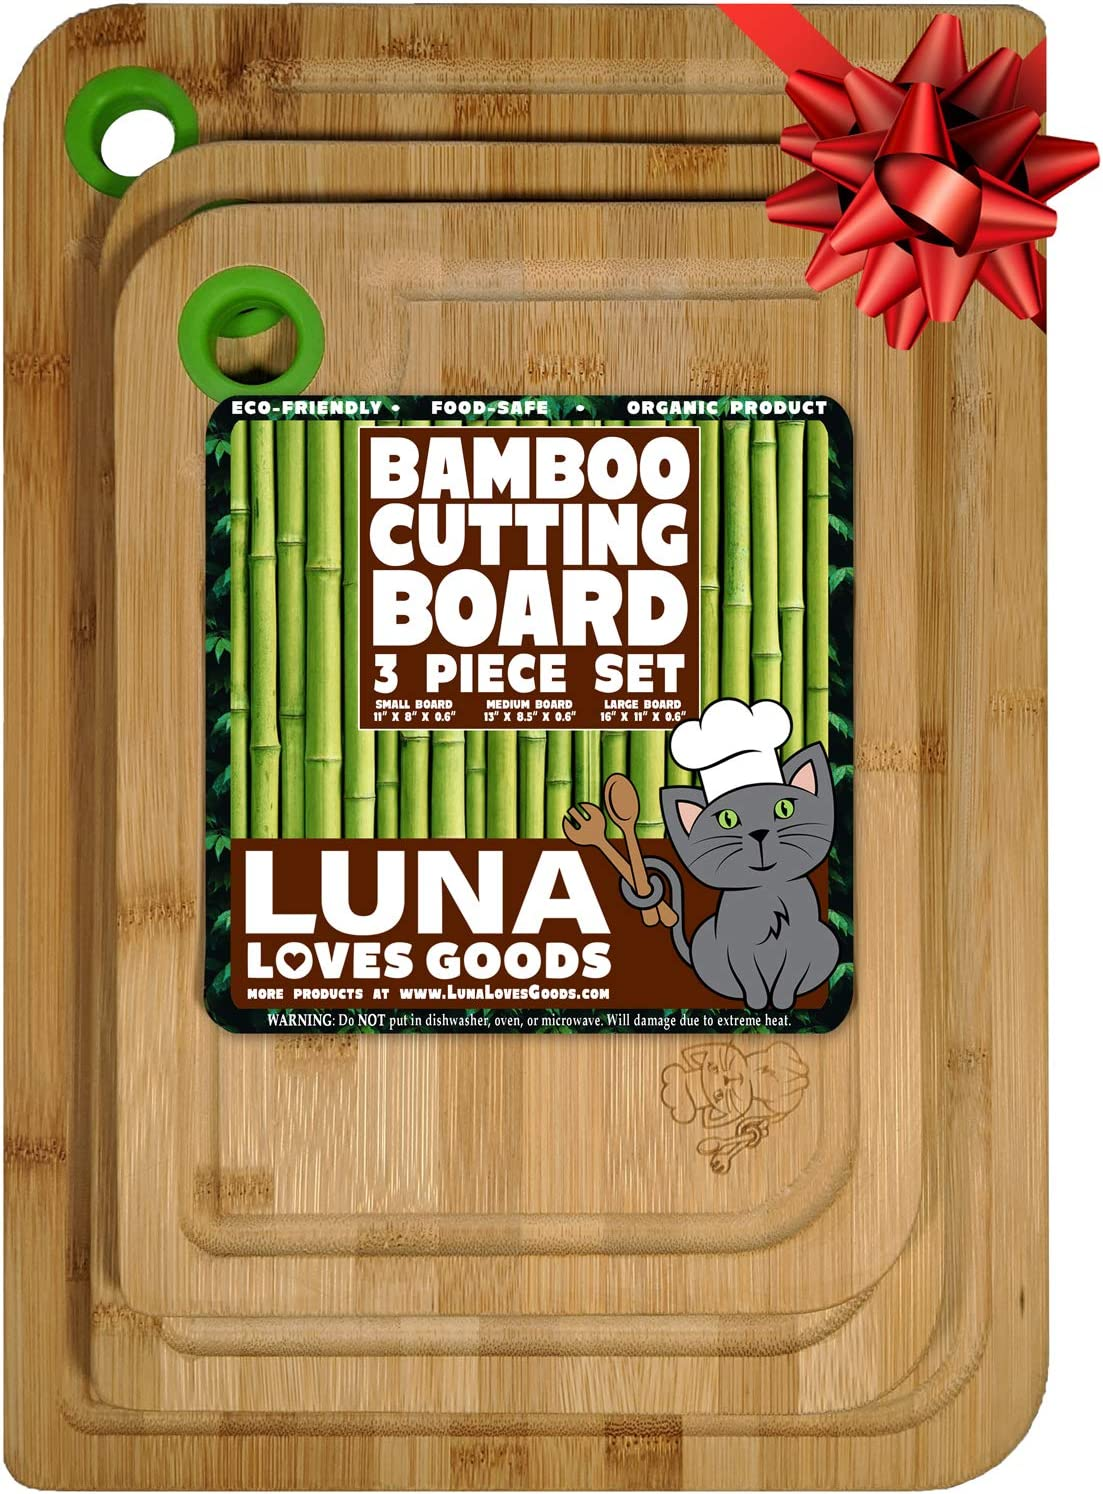 Organic Bamboo Cutting Board Set of 3 with Easy Catch Juice Groove - 100% Natural Bamboo Wooden Boards for Kitchen - Durable Thick Wood Chopping Block - Double Sided Serving Tray